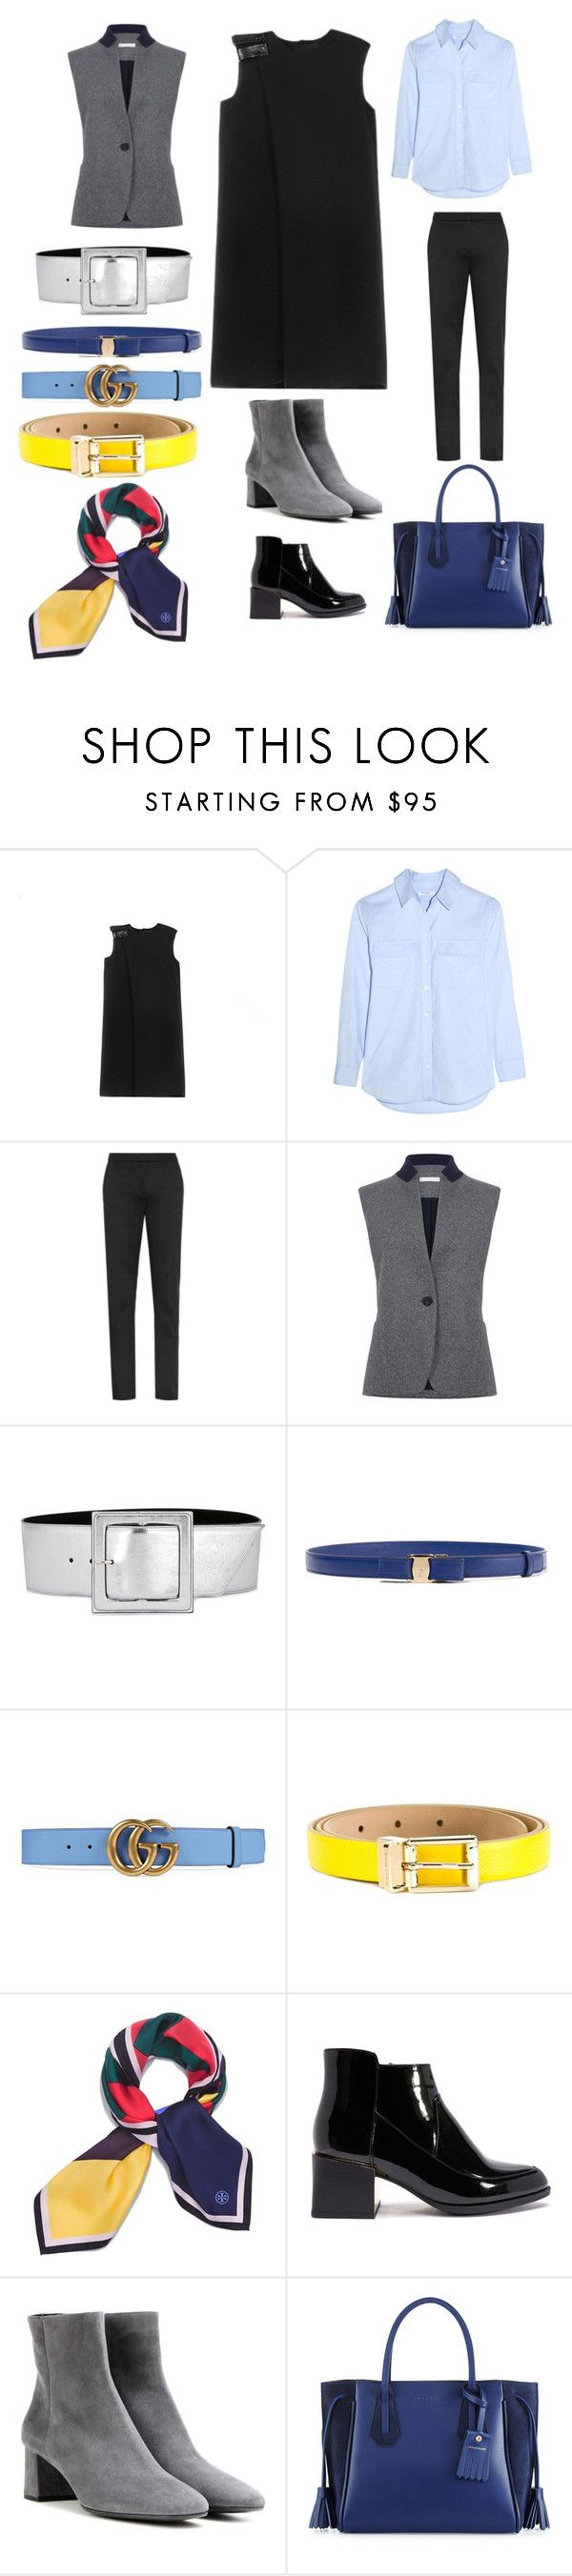 """Capsula For Tanya"" by helenkraft17 on Polyvore featuring мода, Equipment, Atea Oceanie, Yves Saint Laurent, Salvatore Ferragamo, Gucci, Dolce&Gabbana, Tory Burch, Prada и Longchamp"